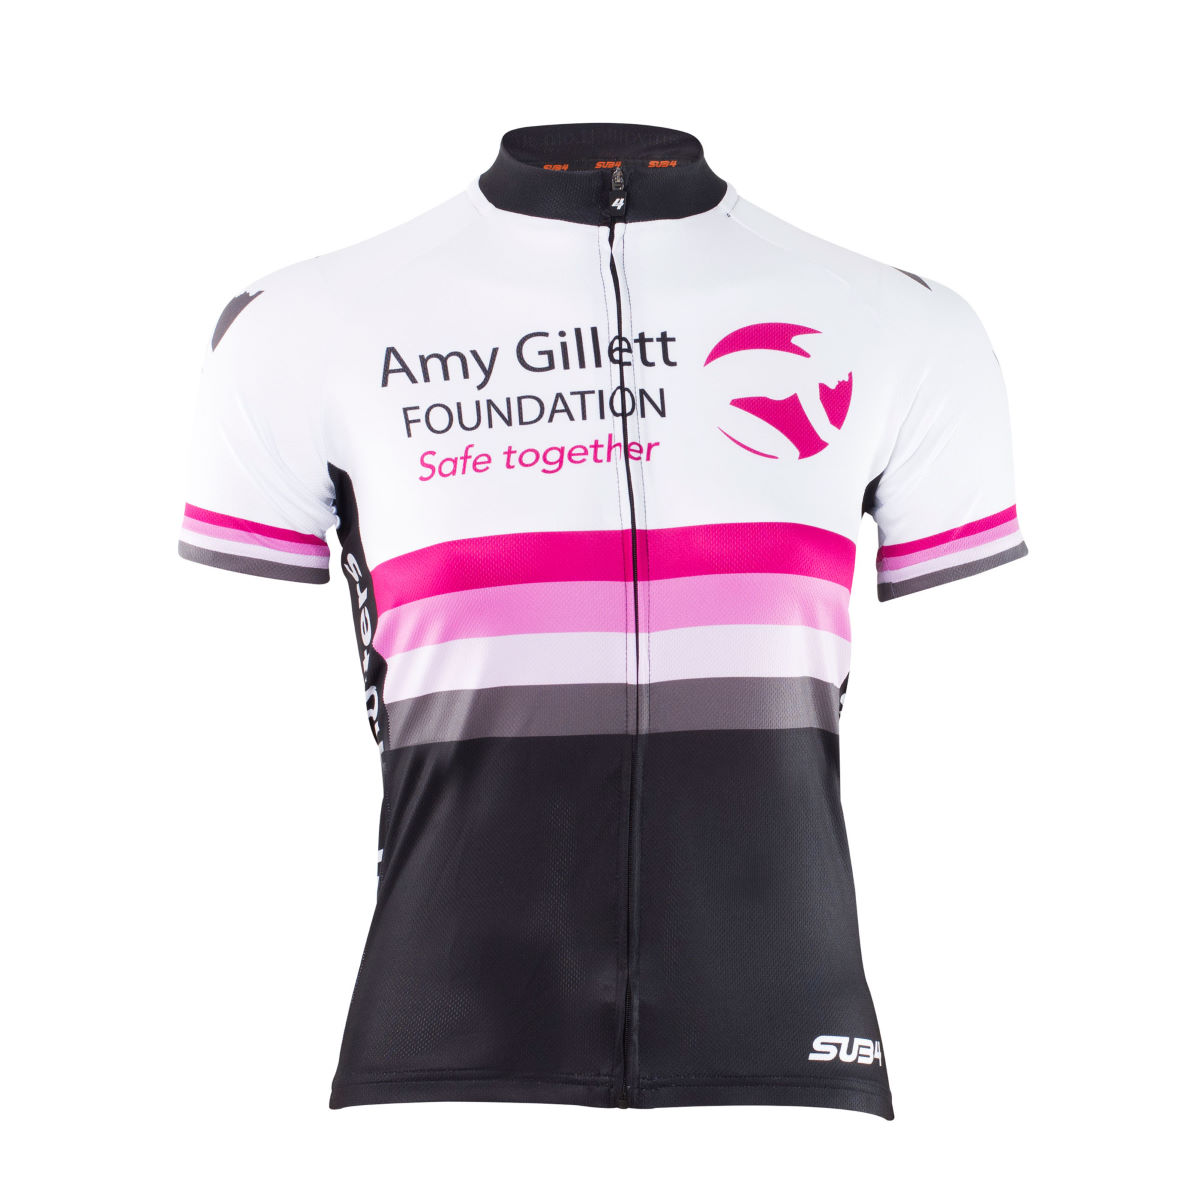 AmyGillettFoundation Women's Jersey